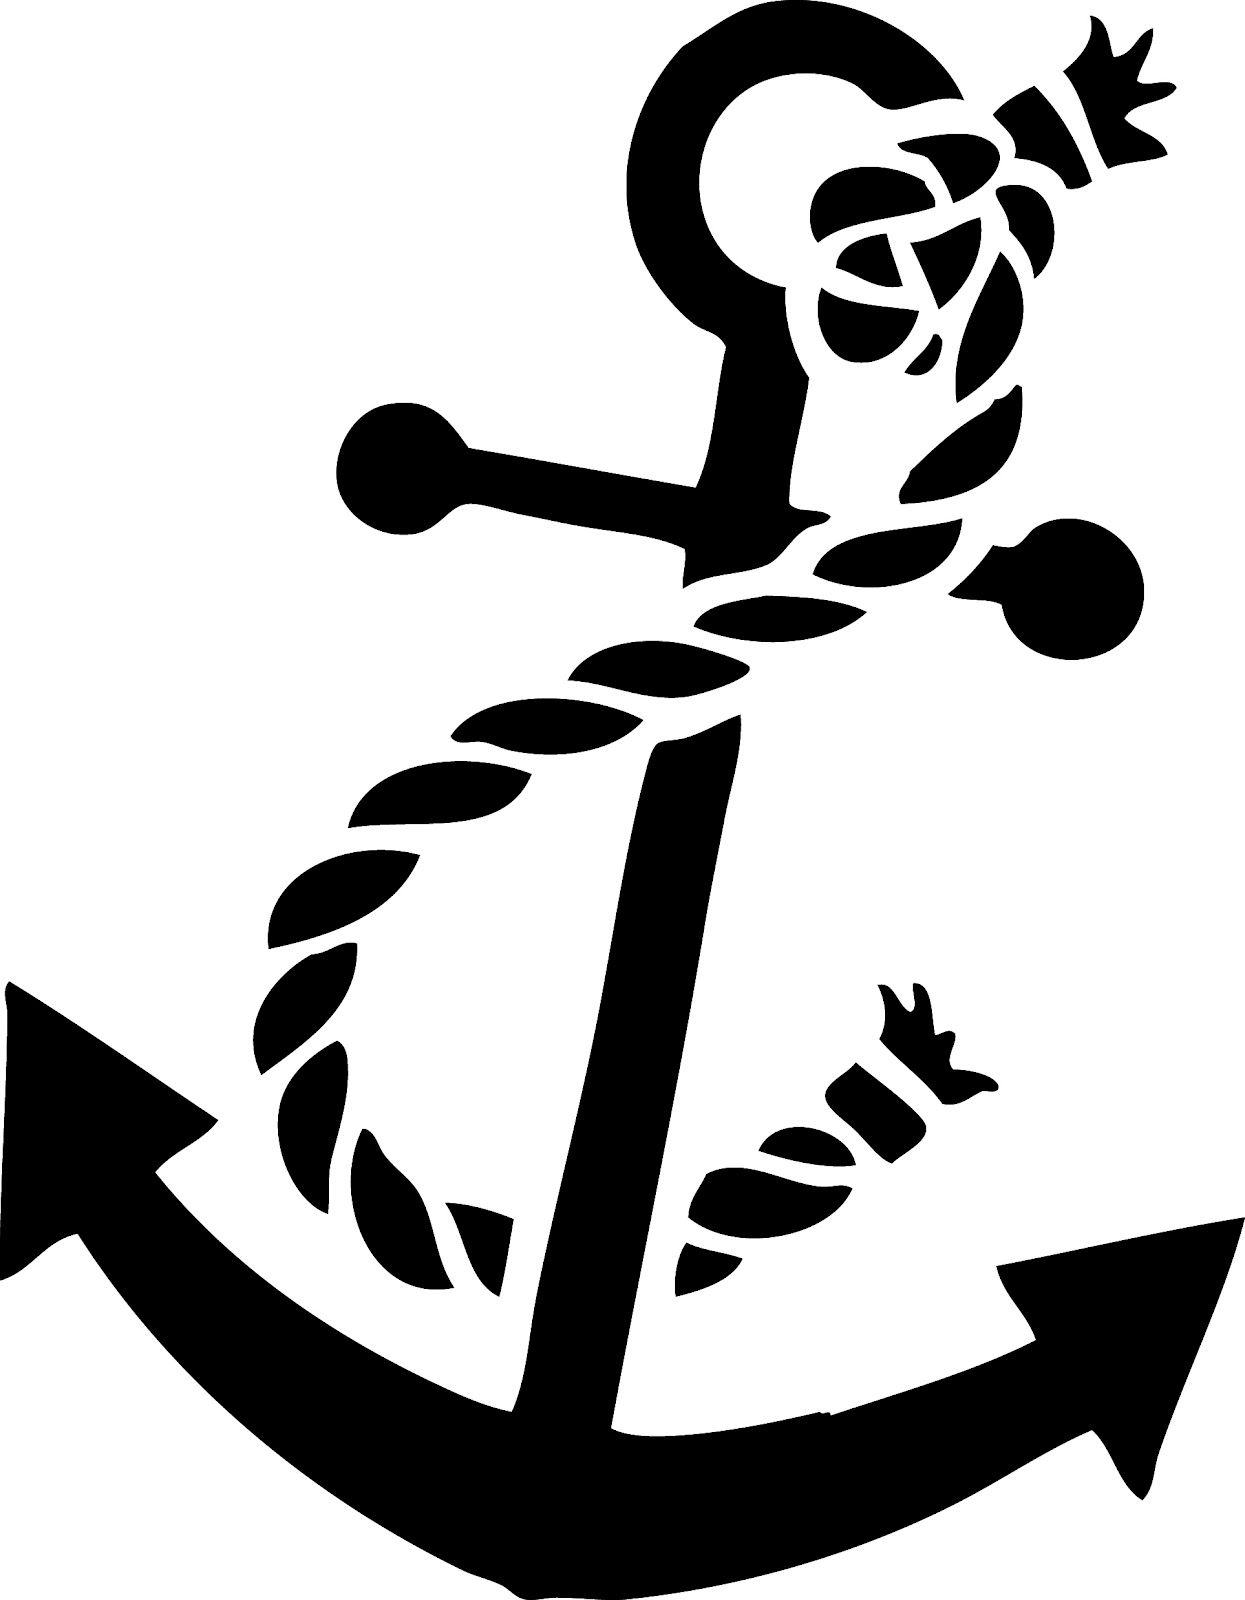 Clip art of silhouettes. Clipart anchor silhouette